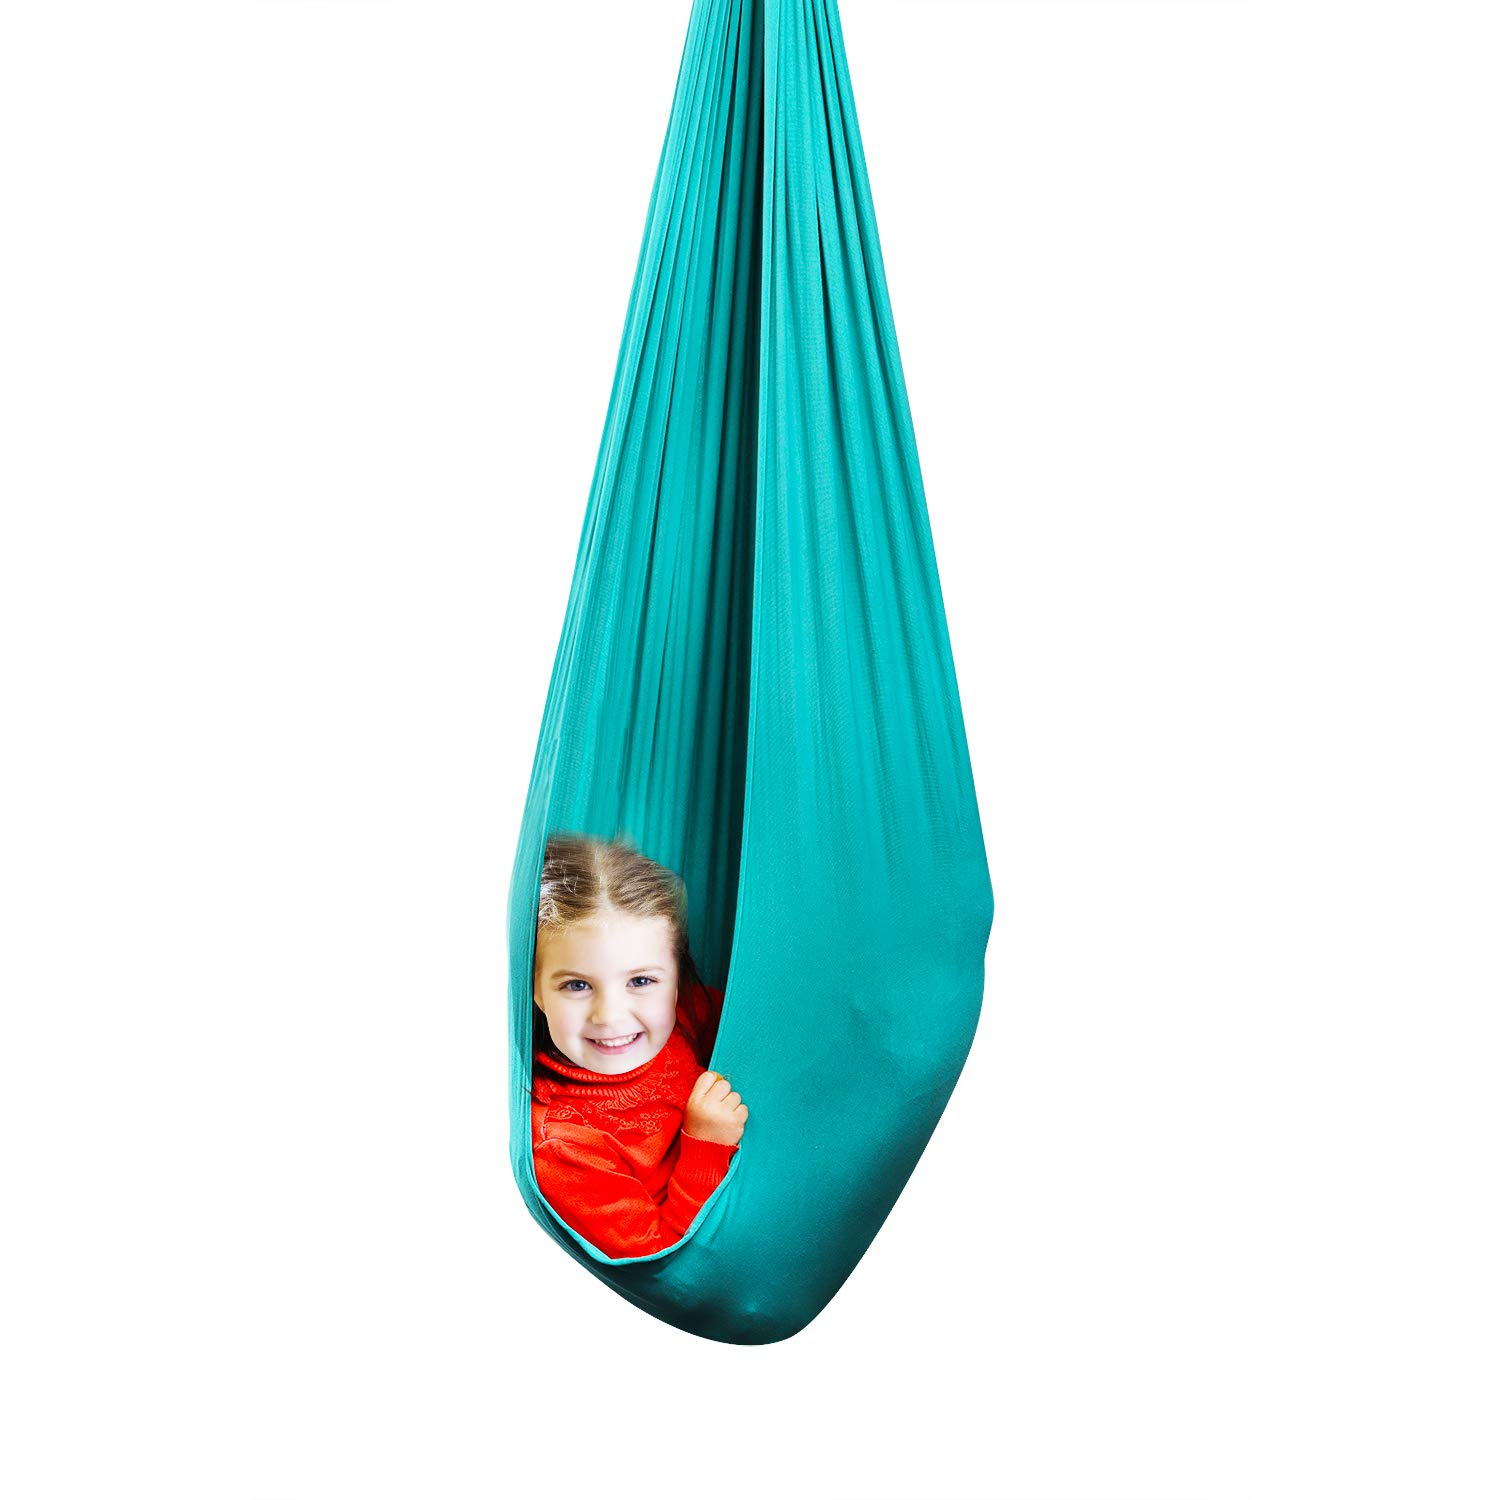 Phenomenal 7 Special Needs Swing Sensory Therapy The Guide 2019 Camellatalisay Diy Chair Ideas Camellatalisaycom